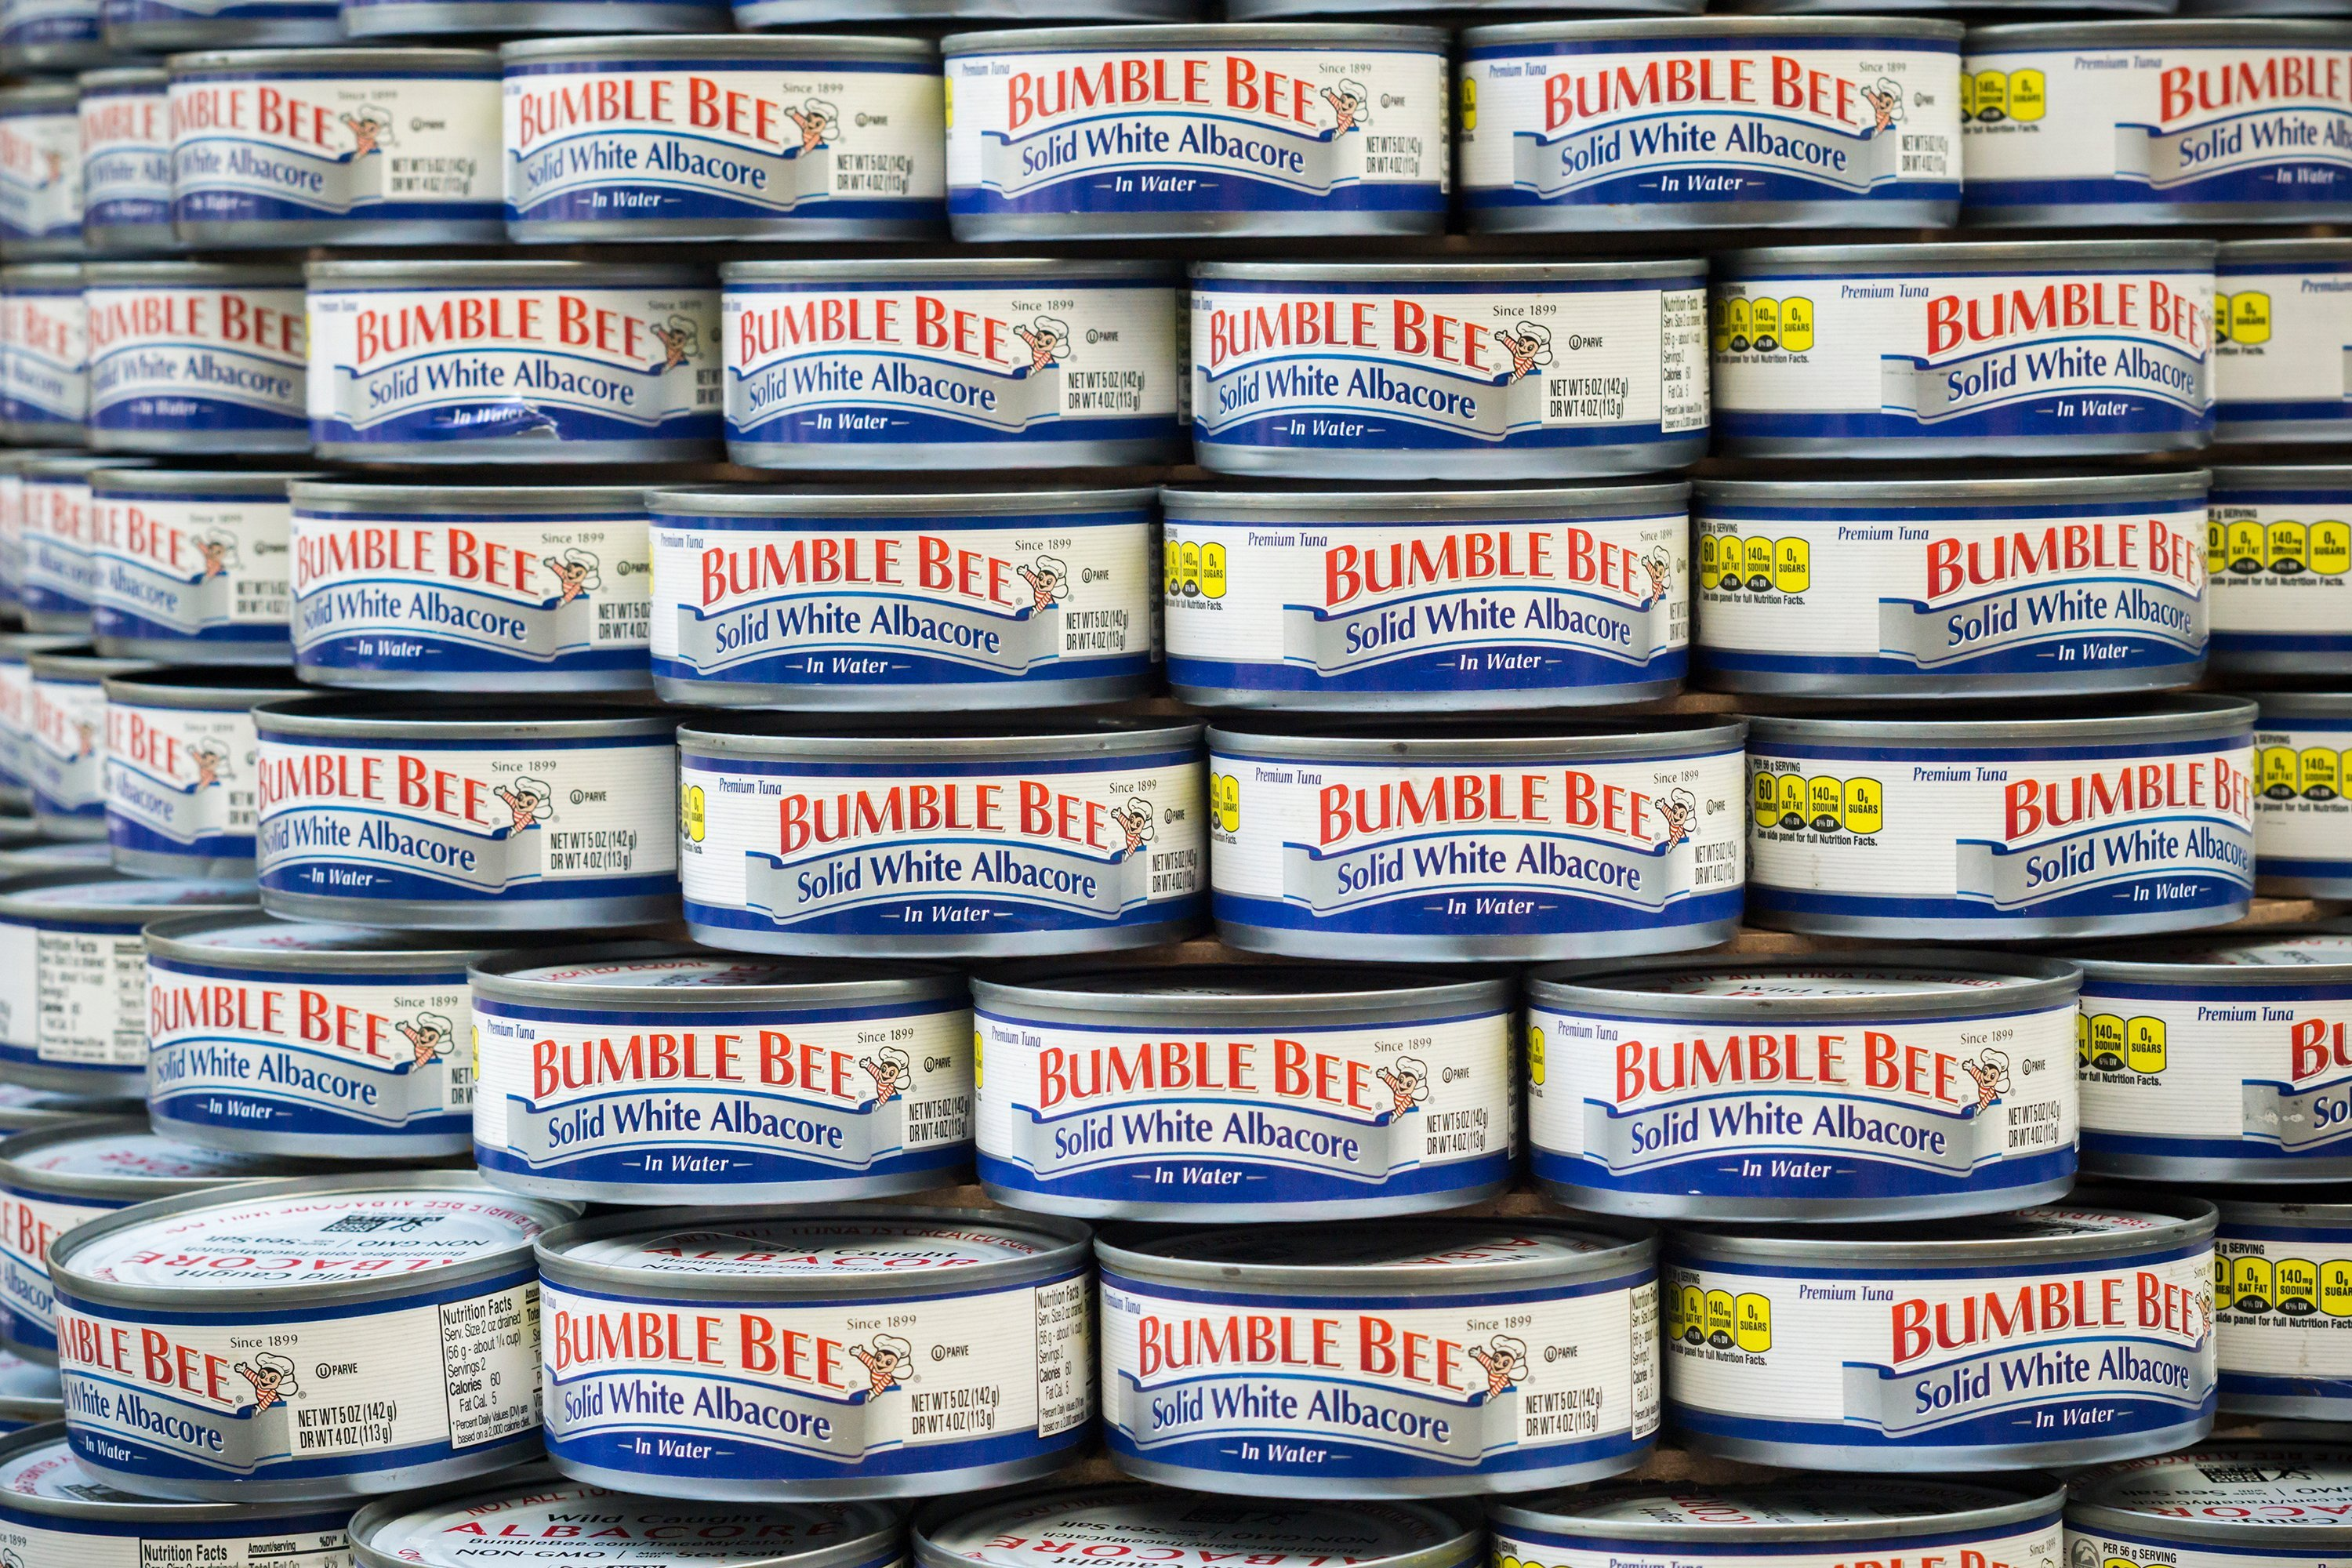 Troubled tuna seller Bumble Bee files for bankruptcy